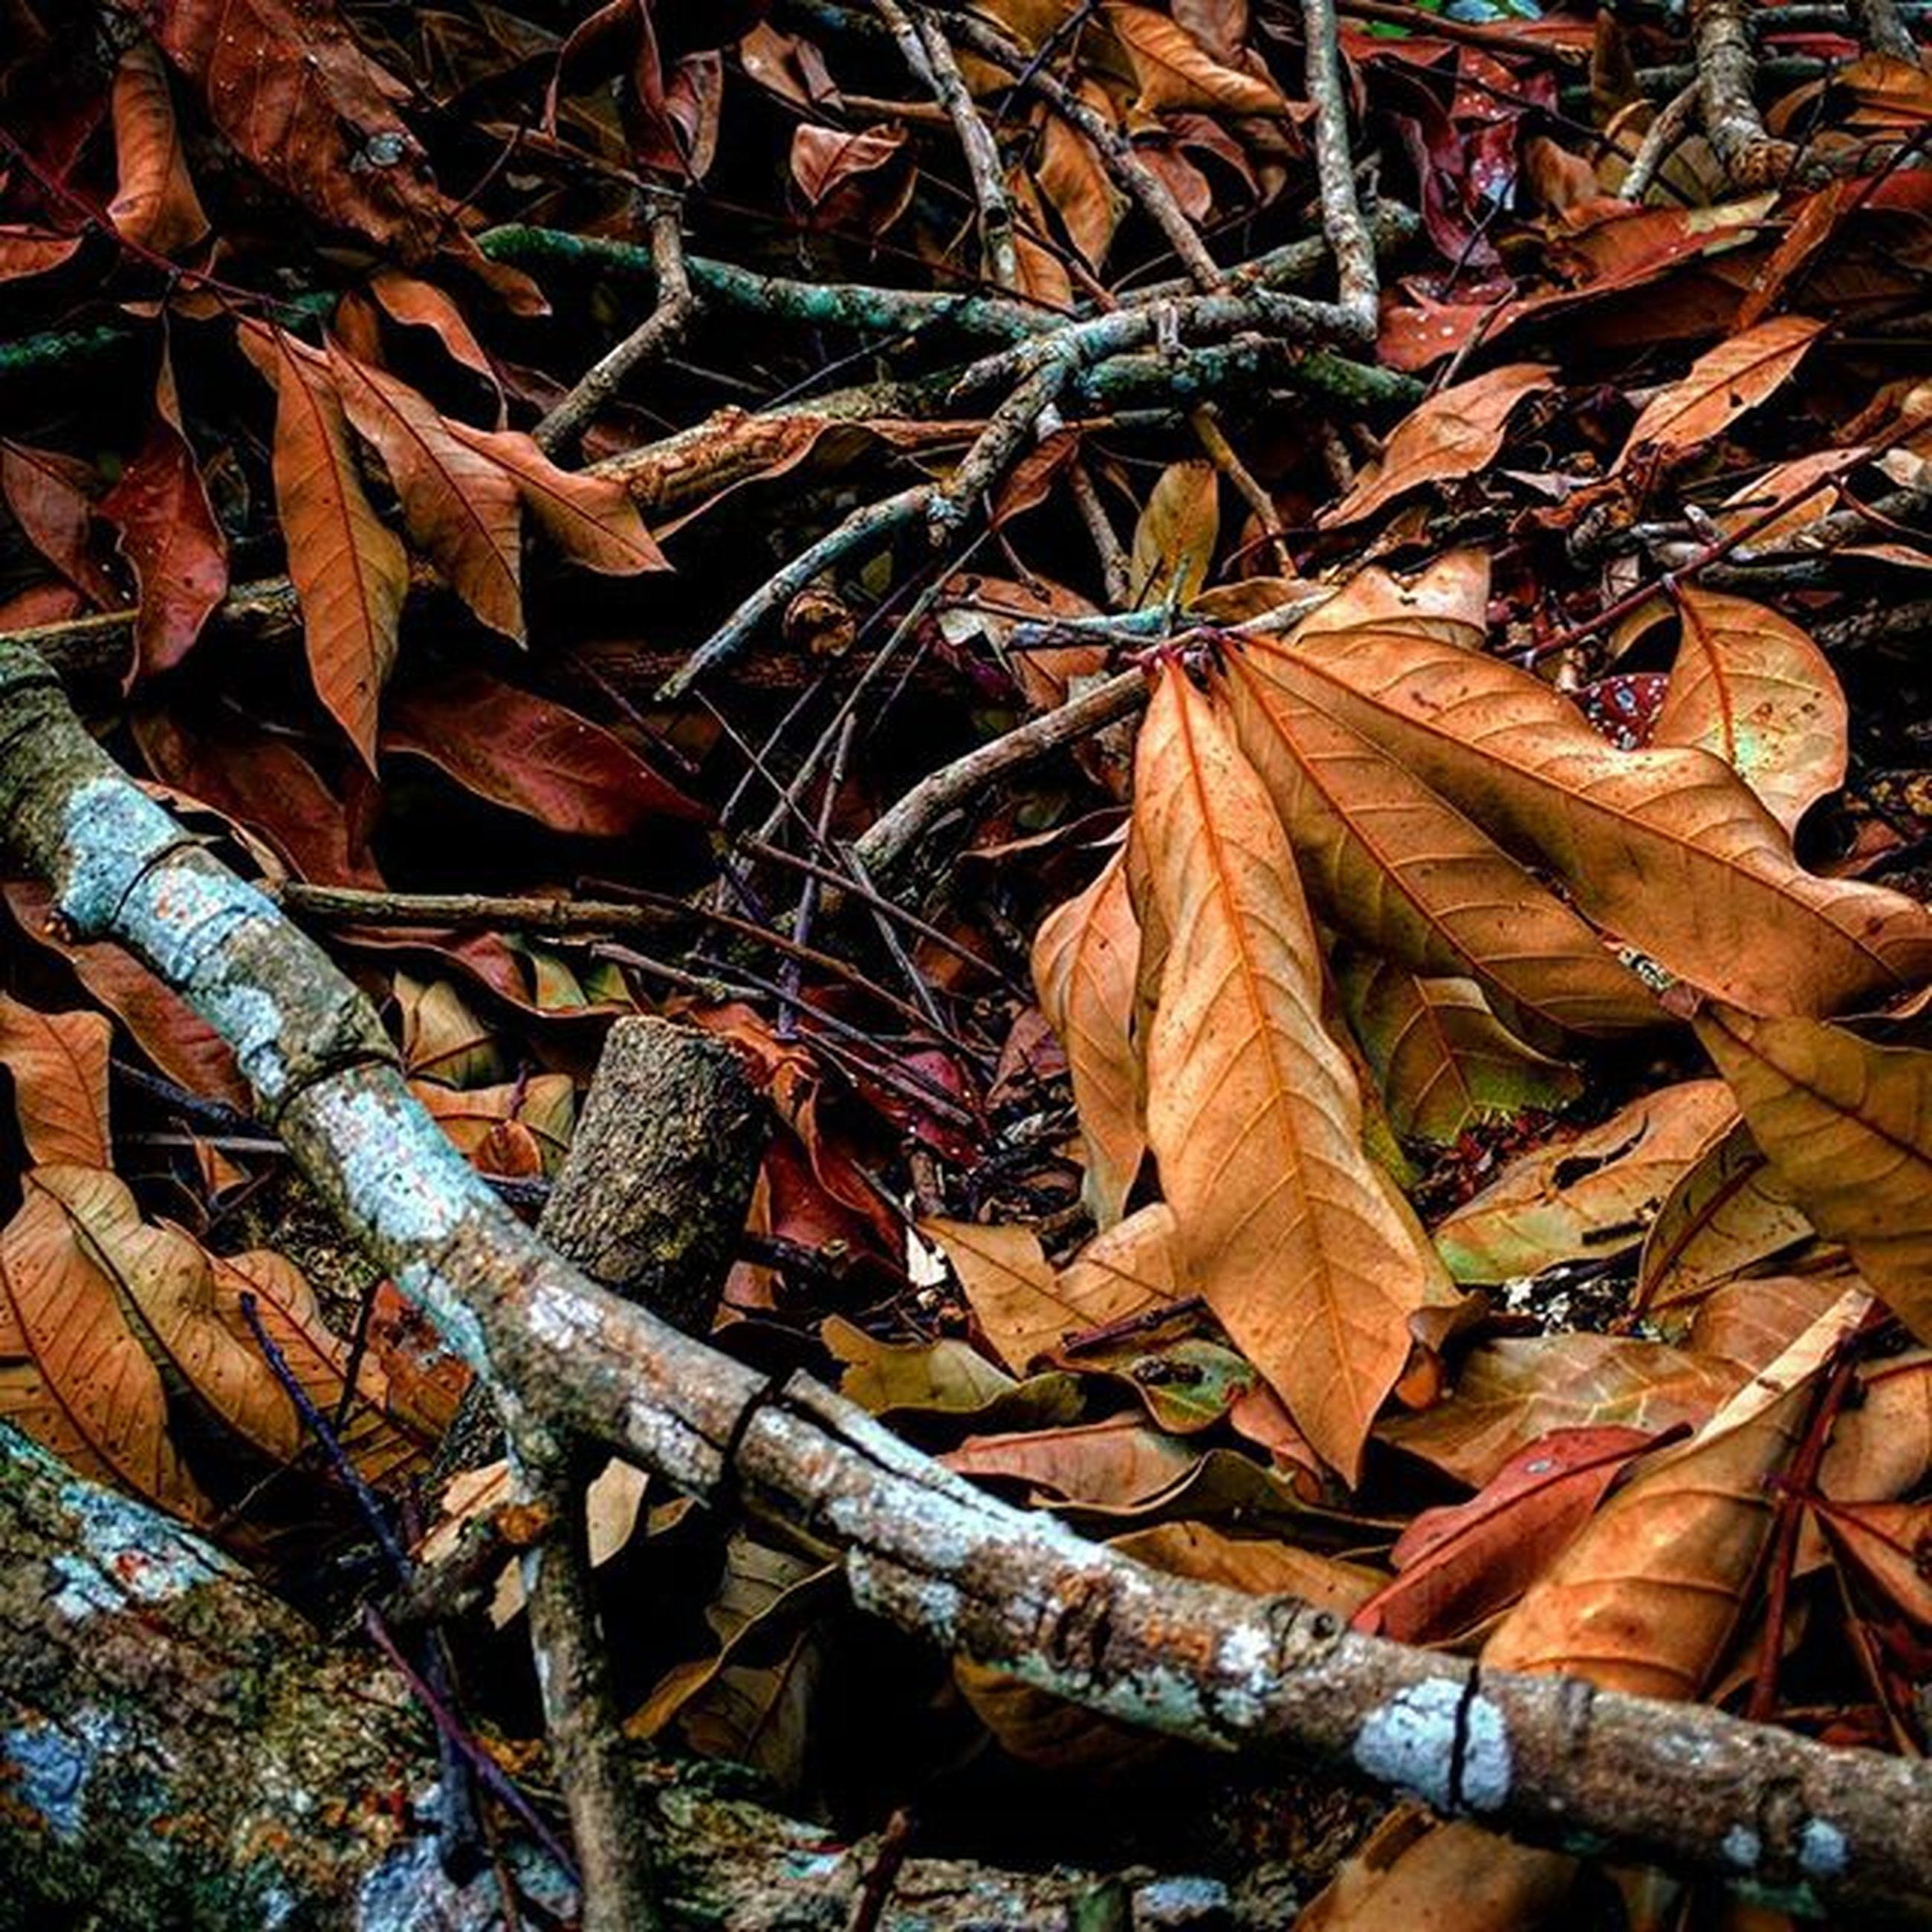 leaf, dry, autumn, change, full frame, high angle view, backgrounds, leaves, abundance, fallen, close-up, nature, brown, season, outdoors, aging process, day, wood - material, natural pattern, no people